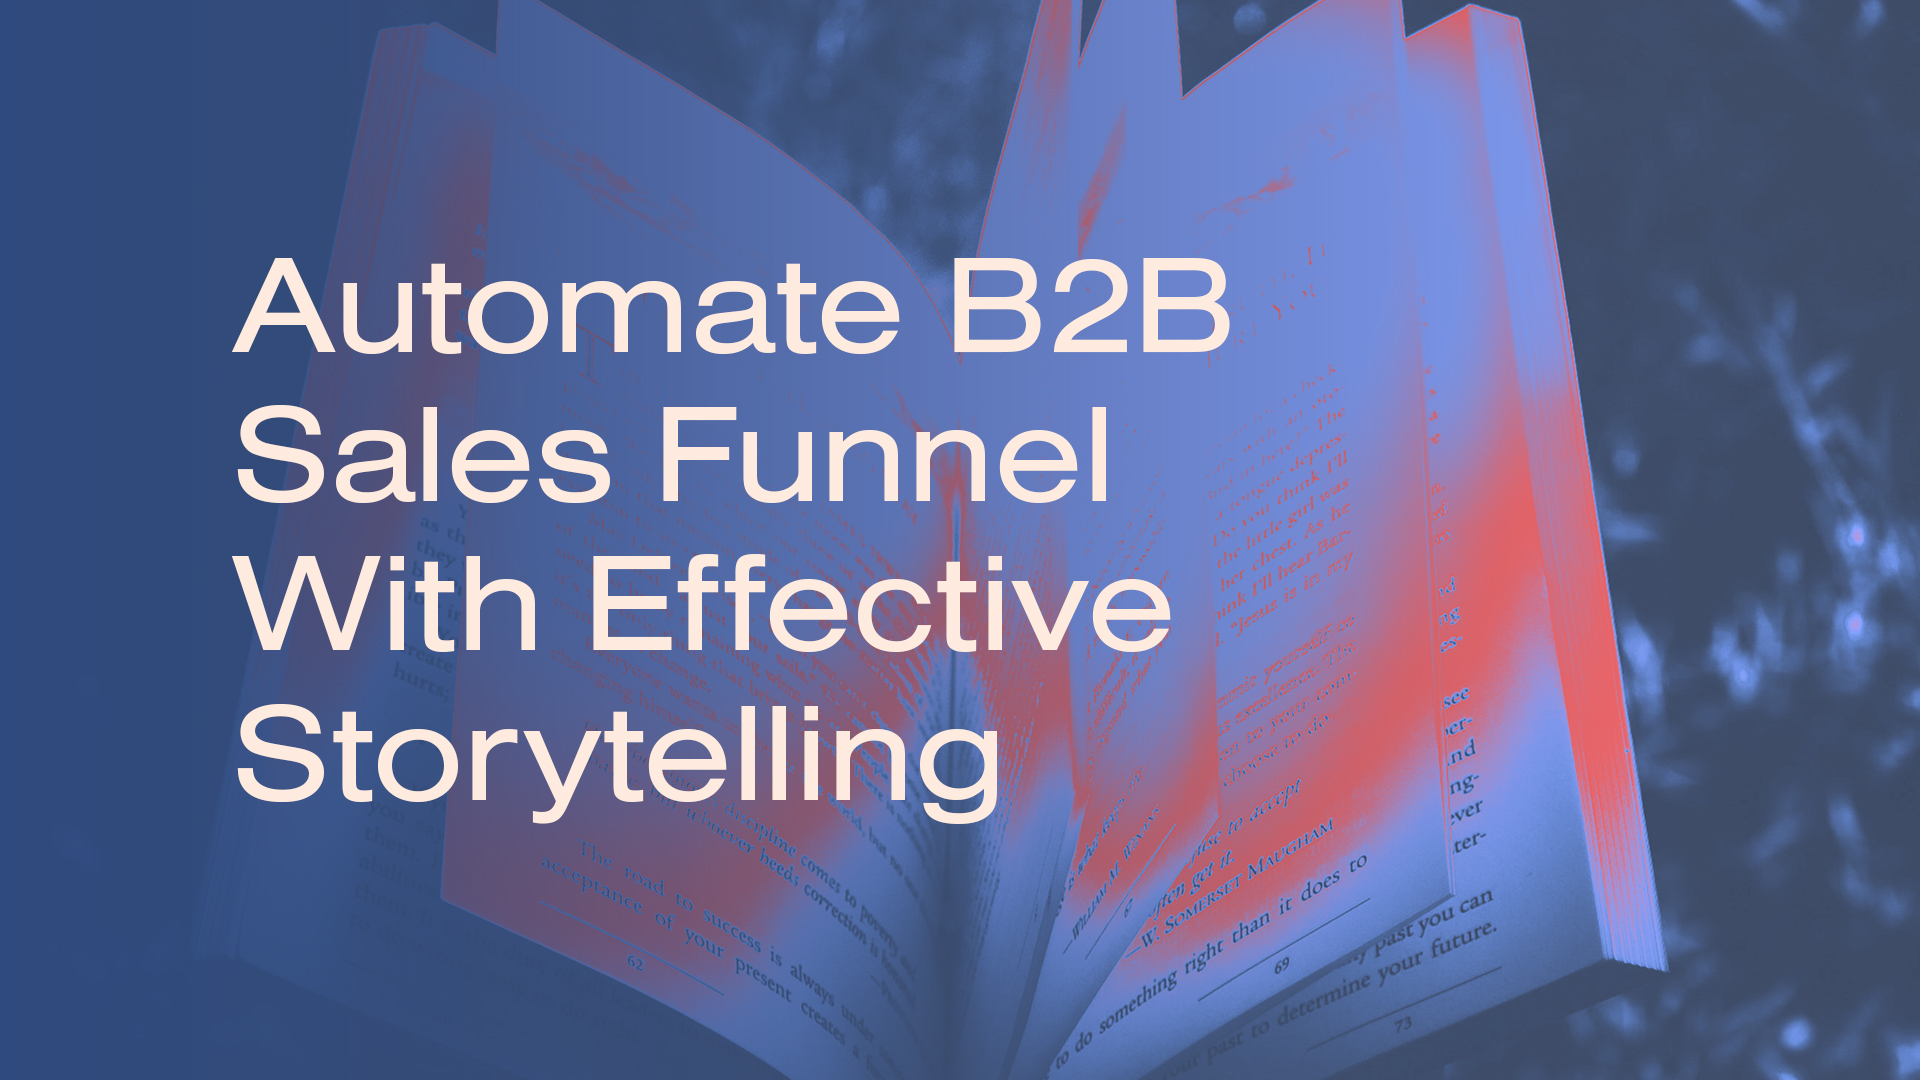 Thumbnail for insight on How to Automate Your Sales Funnel with Effective Storytelling